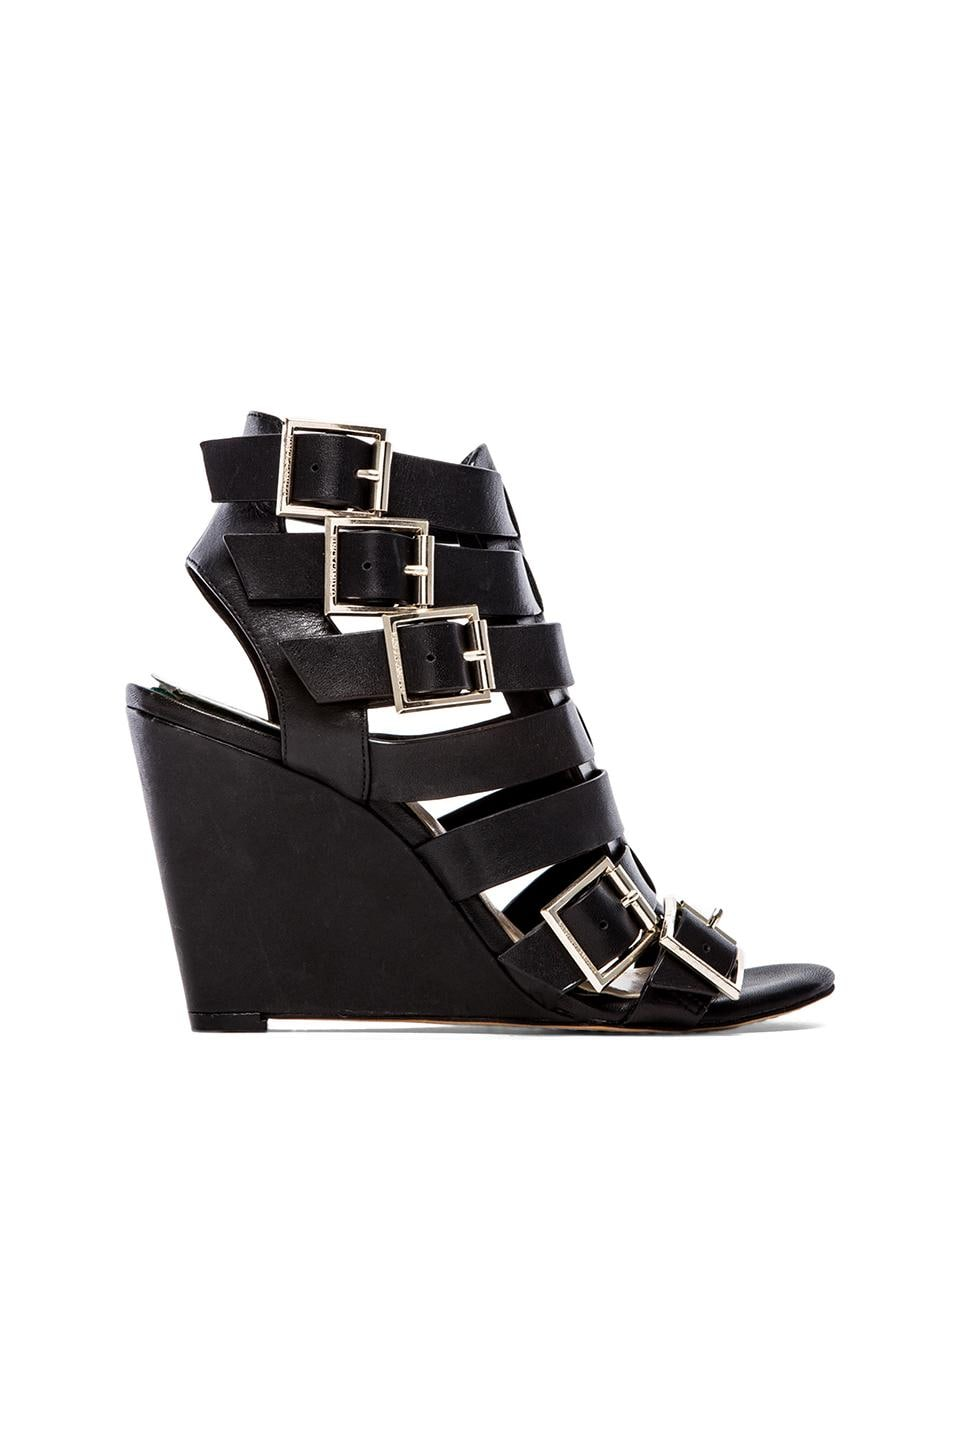 Vince Camuto Martez Wedge in Black